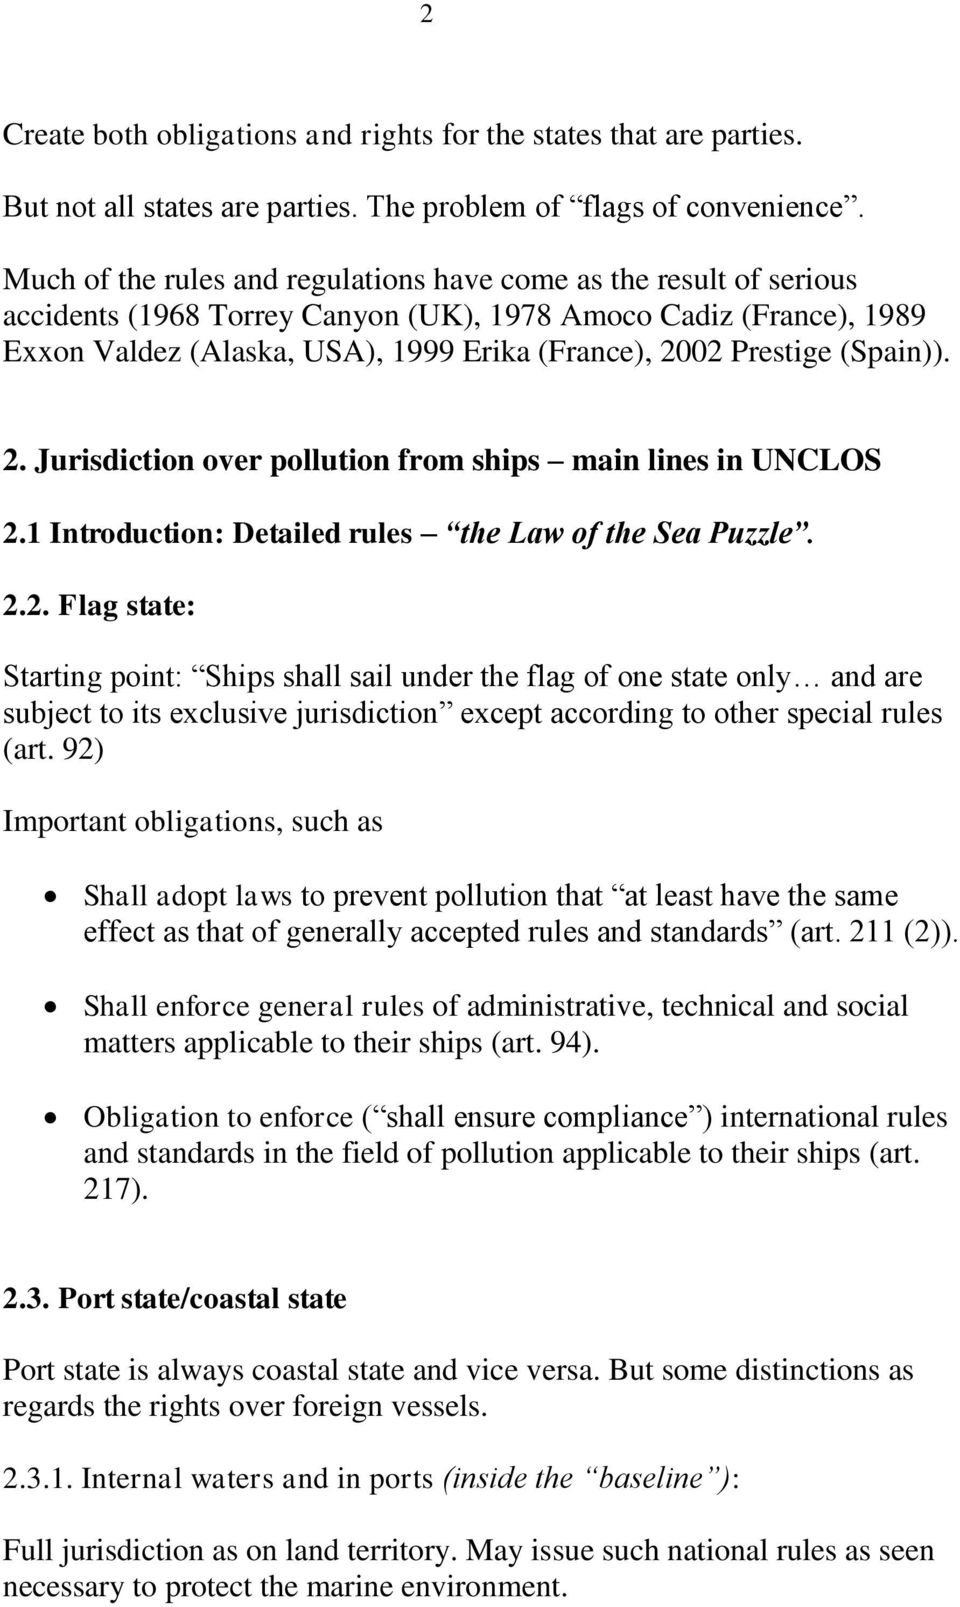 (Spain)). 2. Jurisdiction over pollution from ships main lines in UNCLOS 2.1 Introduction: Detailed rules the Law of the Sea Puzzle. 2.2. Flag state: Starting point: Ships shall sail under the flag of one state only and are subject to its exclusive jurisdiction except according to other special rules (art.